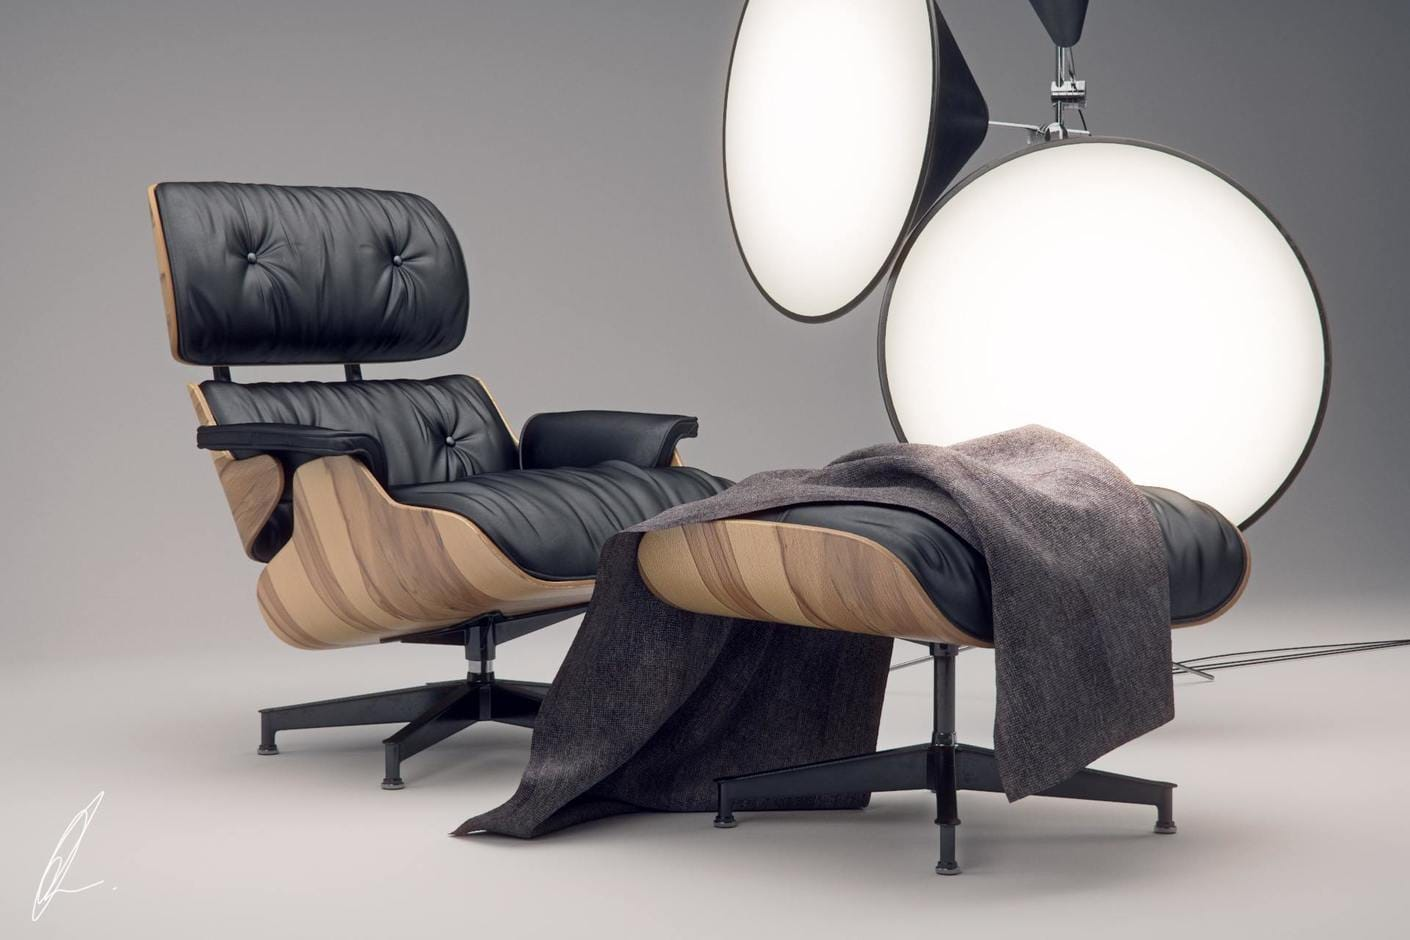 Eames Lounge Chair Jonathan Evans Chaos Group